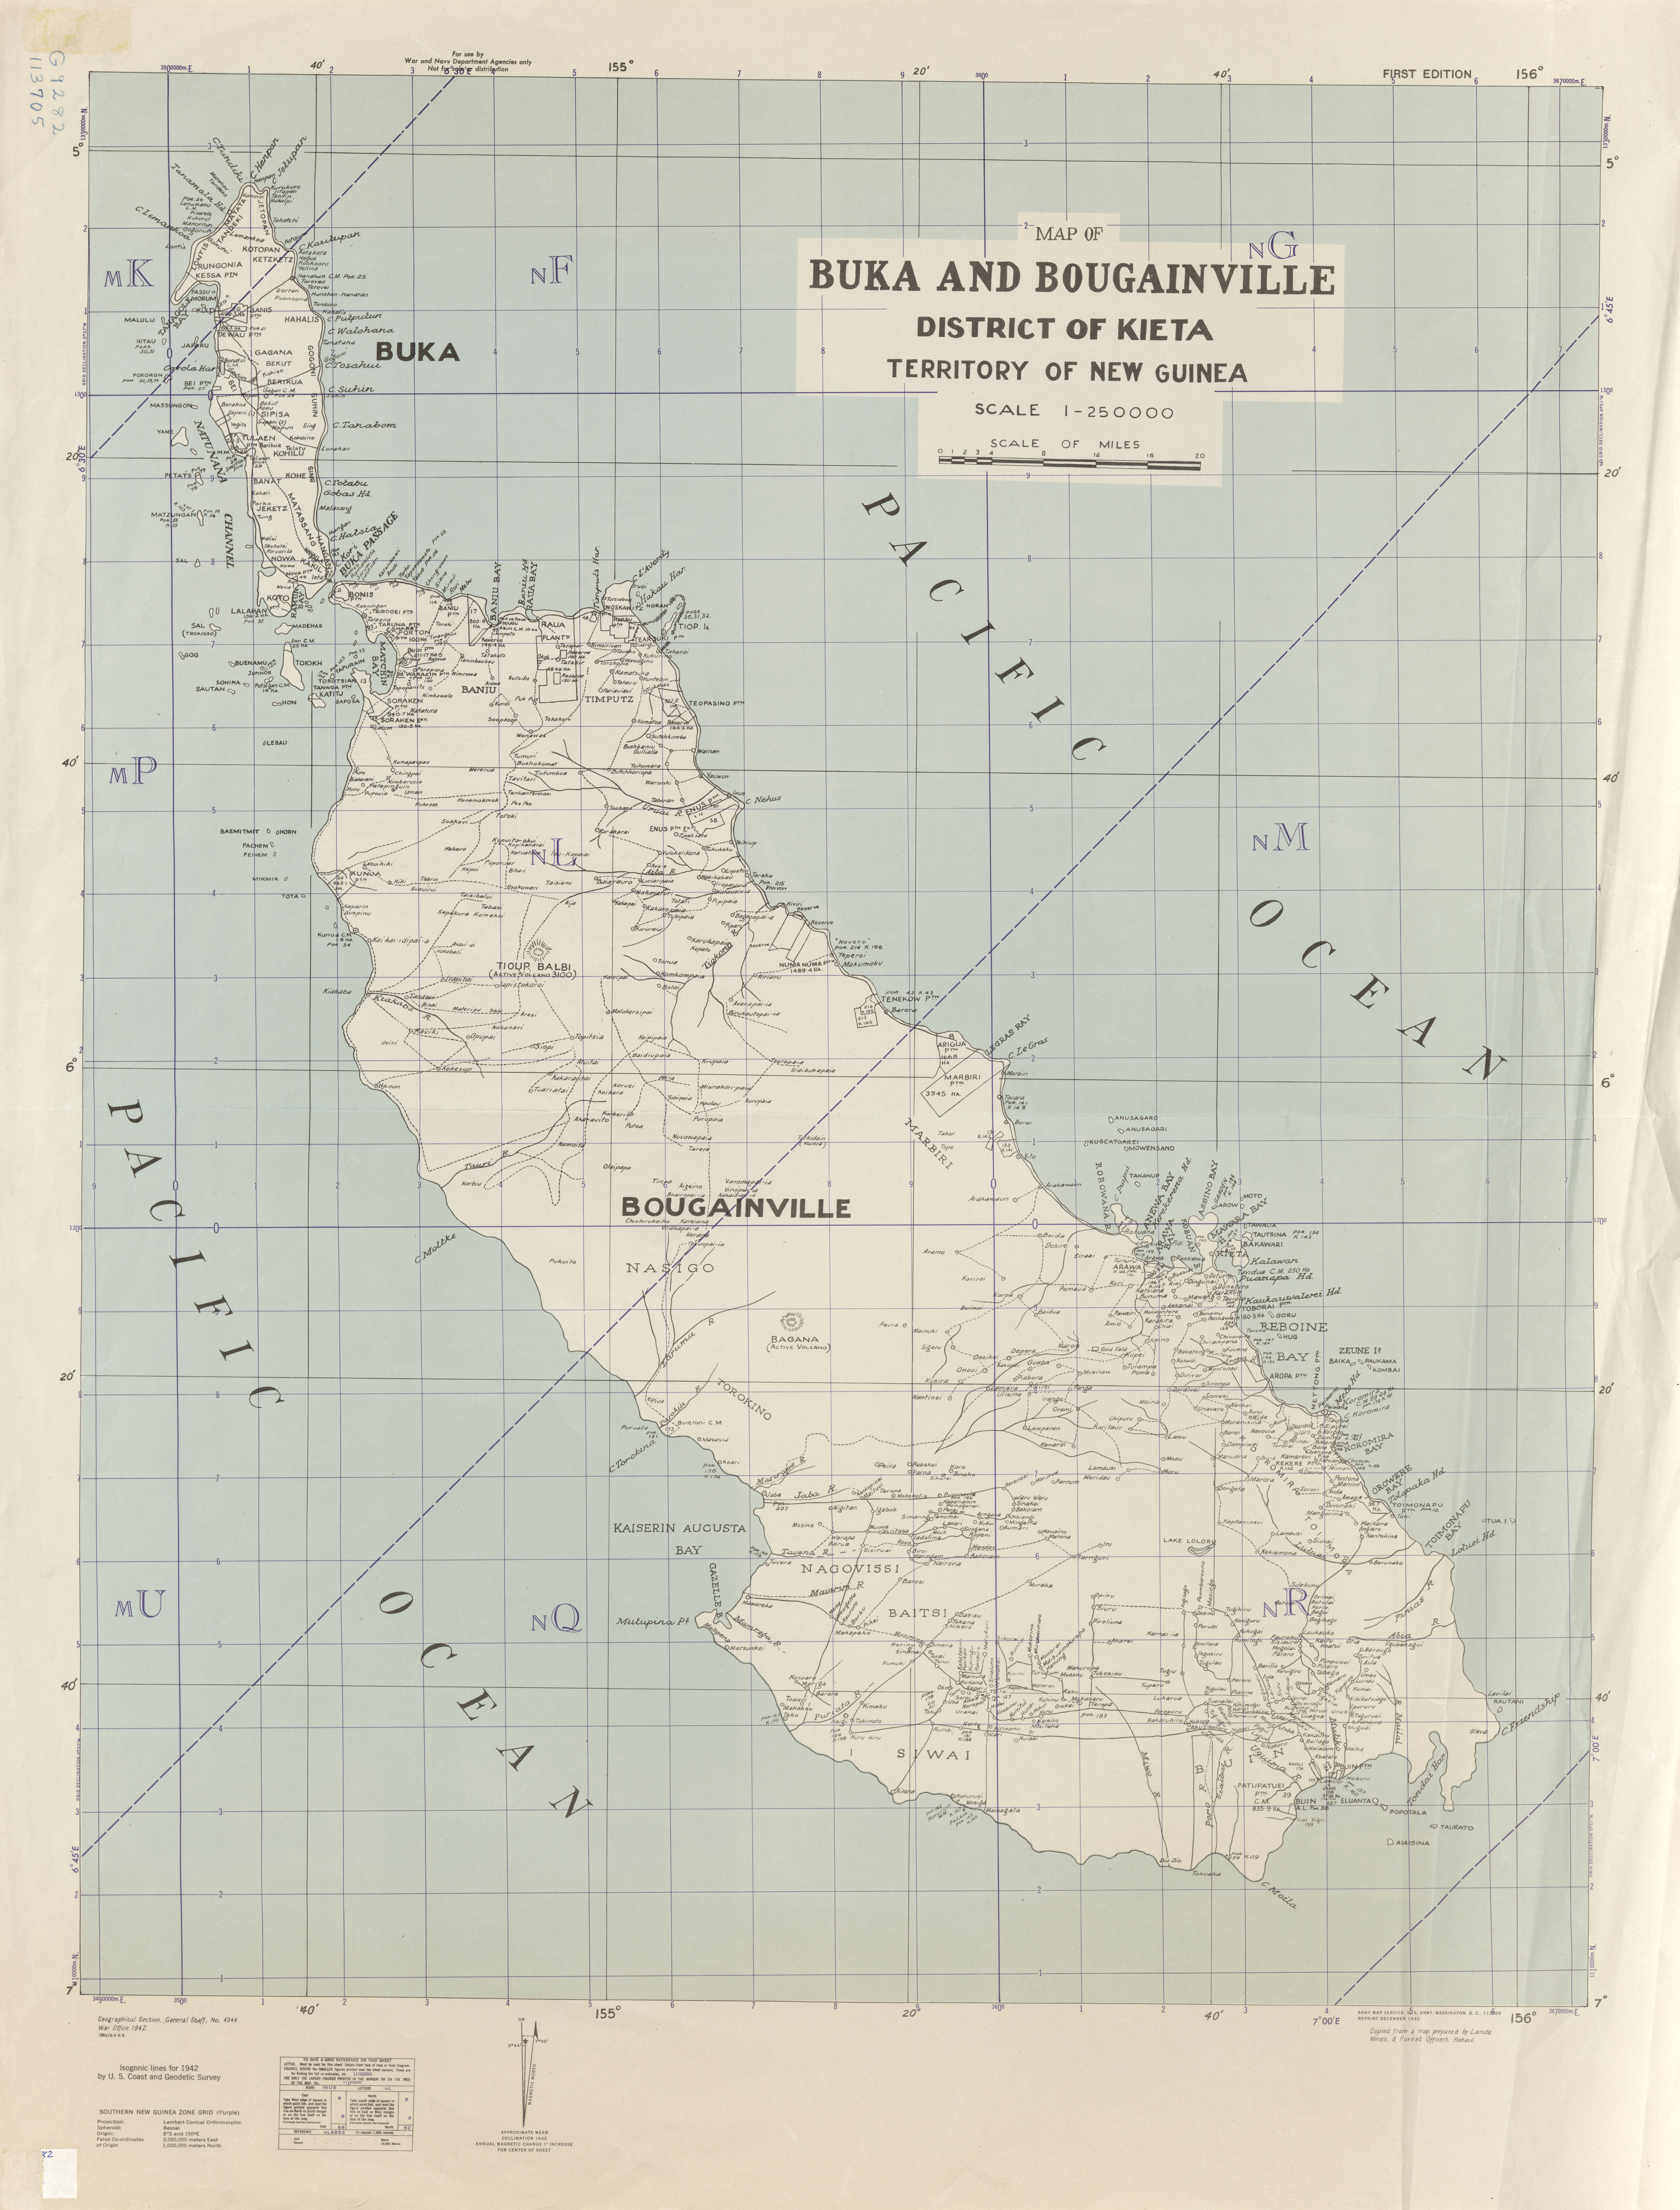 Army Map Service PerryCastañeda Map Collection UT Library Online - Us military installation road map